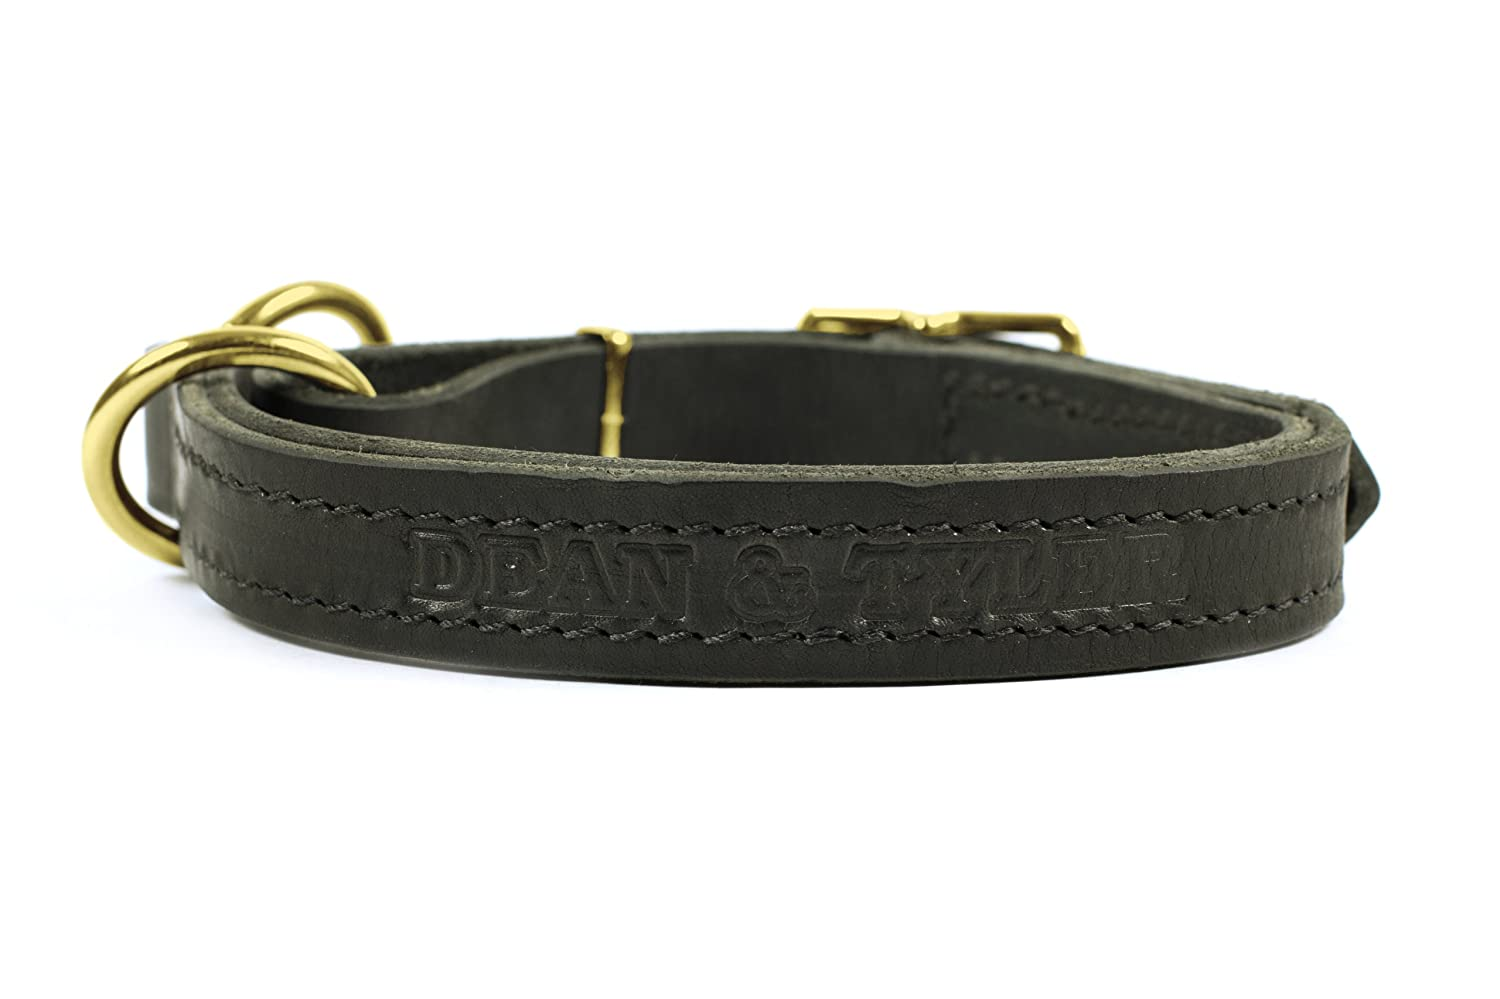 Dean and Tyler STRICTLY BUSINESS , 2-in-1 Dog Choke Collar with Solid Brass Hardware Black Size 20-Inch by 1-Inch Fits Neck 18-Inch to 20-Inch